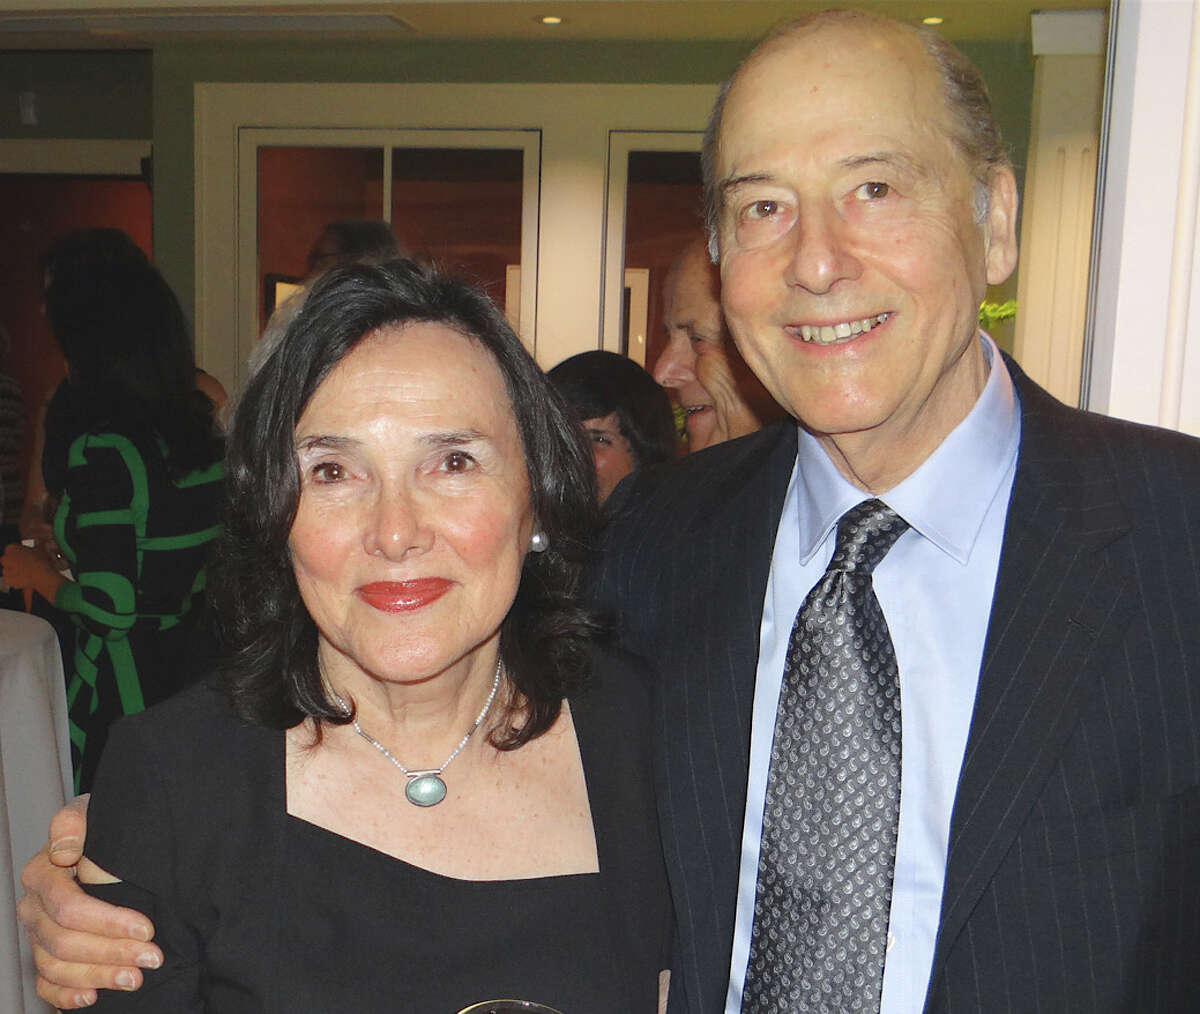 Internationally celebrated photographer Philip Trager and wife Ina, of Fairfield, at the Thursday opening reception for the Fairfield Museum and History Center's IMAGES 2013 exhibit, in which Trager's work is featured.